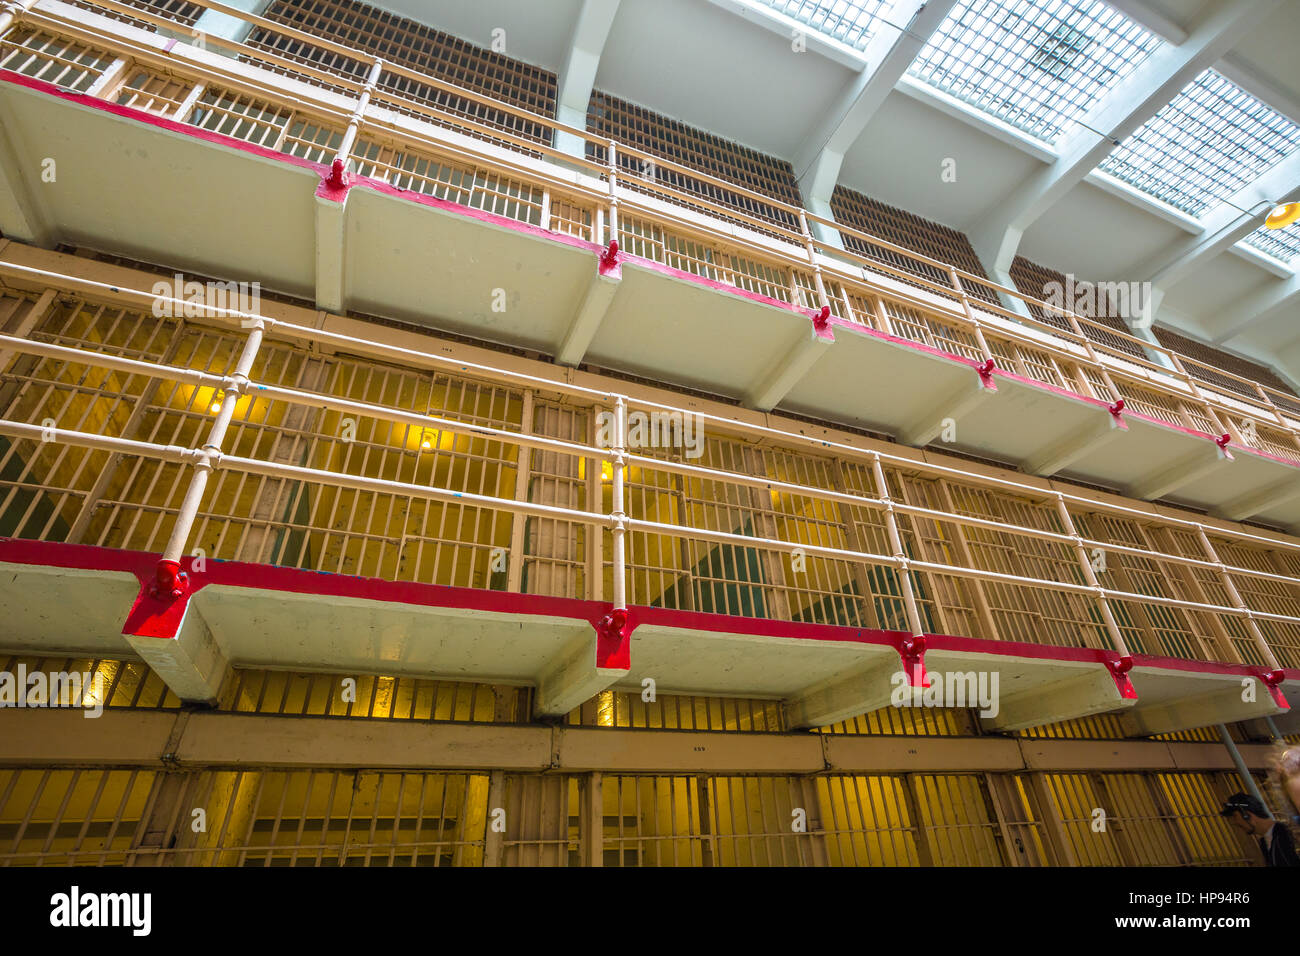 San Francisco, California, United States - August 14, 2016: Alcatraz main cells on three levels. All the cells are - Stock Image